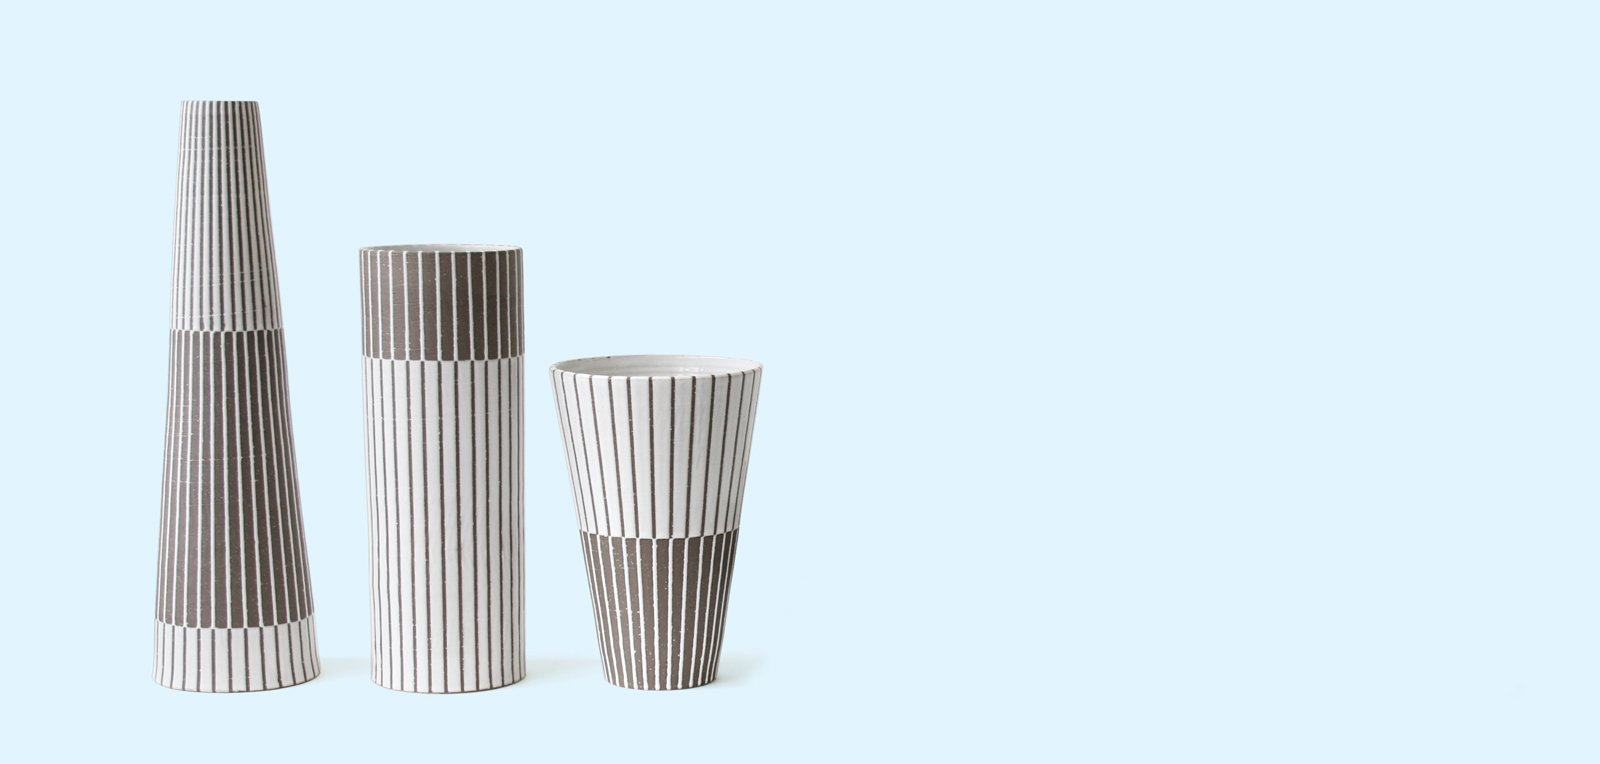 Three of Adler's ceramic designs.  Jonathan Adler by Jordan Kushins